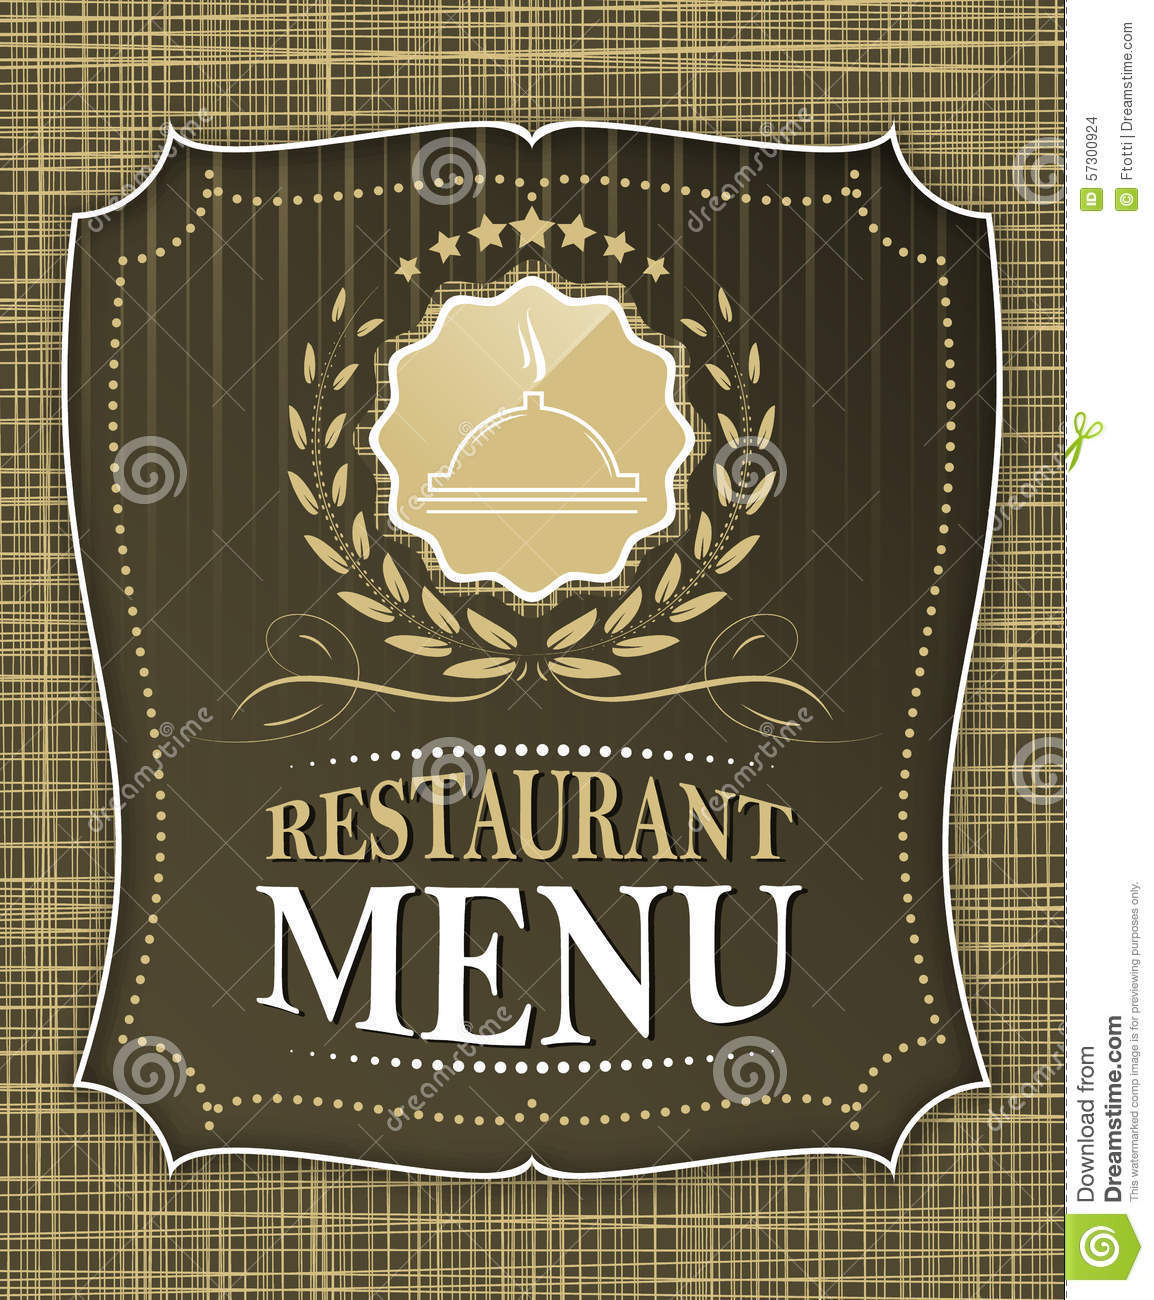 Restaurant menu cover design in vintage style stock vector